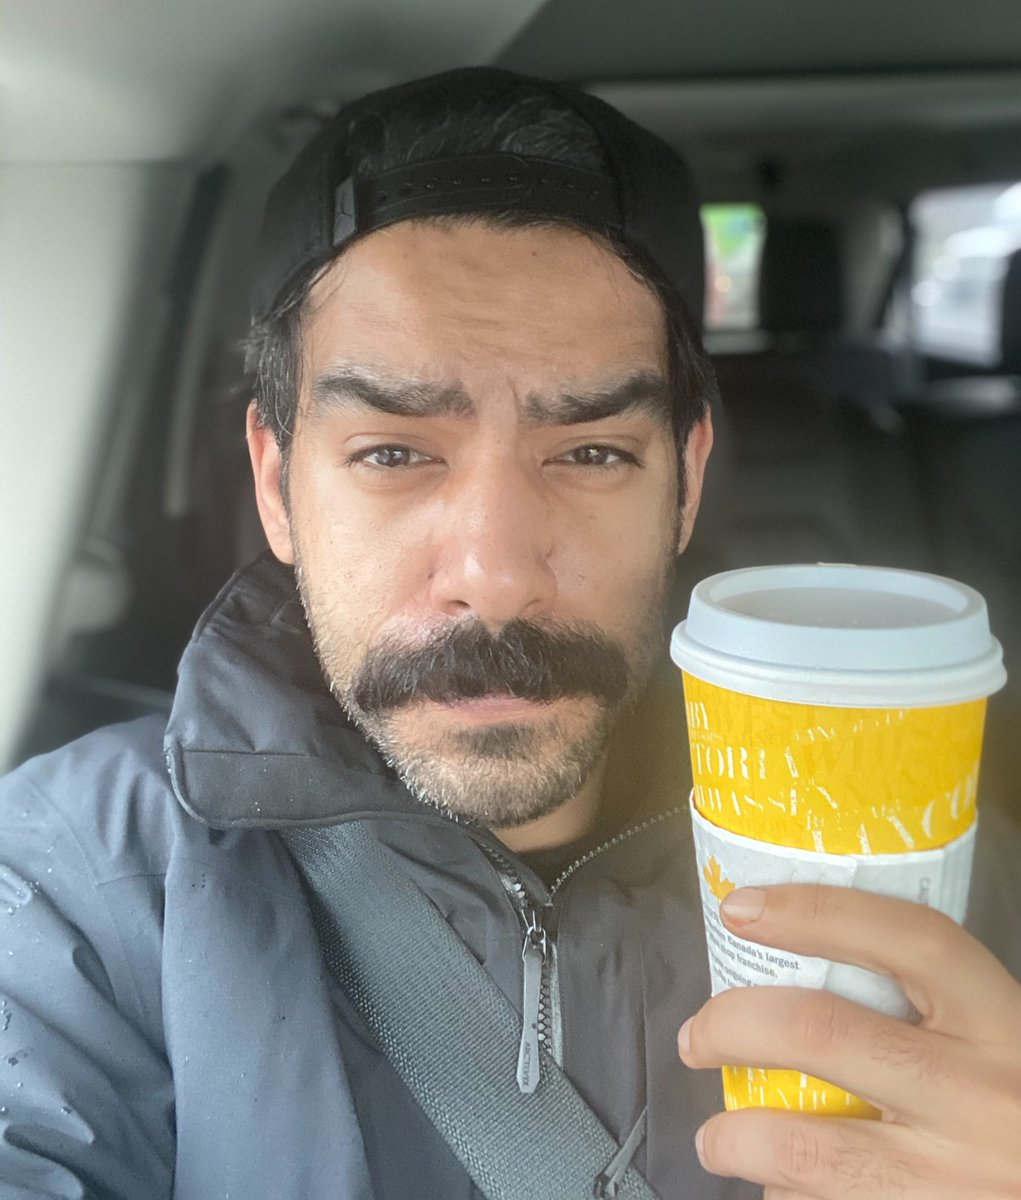 Rahul Kohli On Twitter And So Begins My Last Day On The Haunting Of Bly Manor Cheers